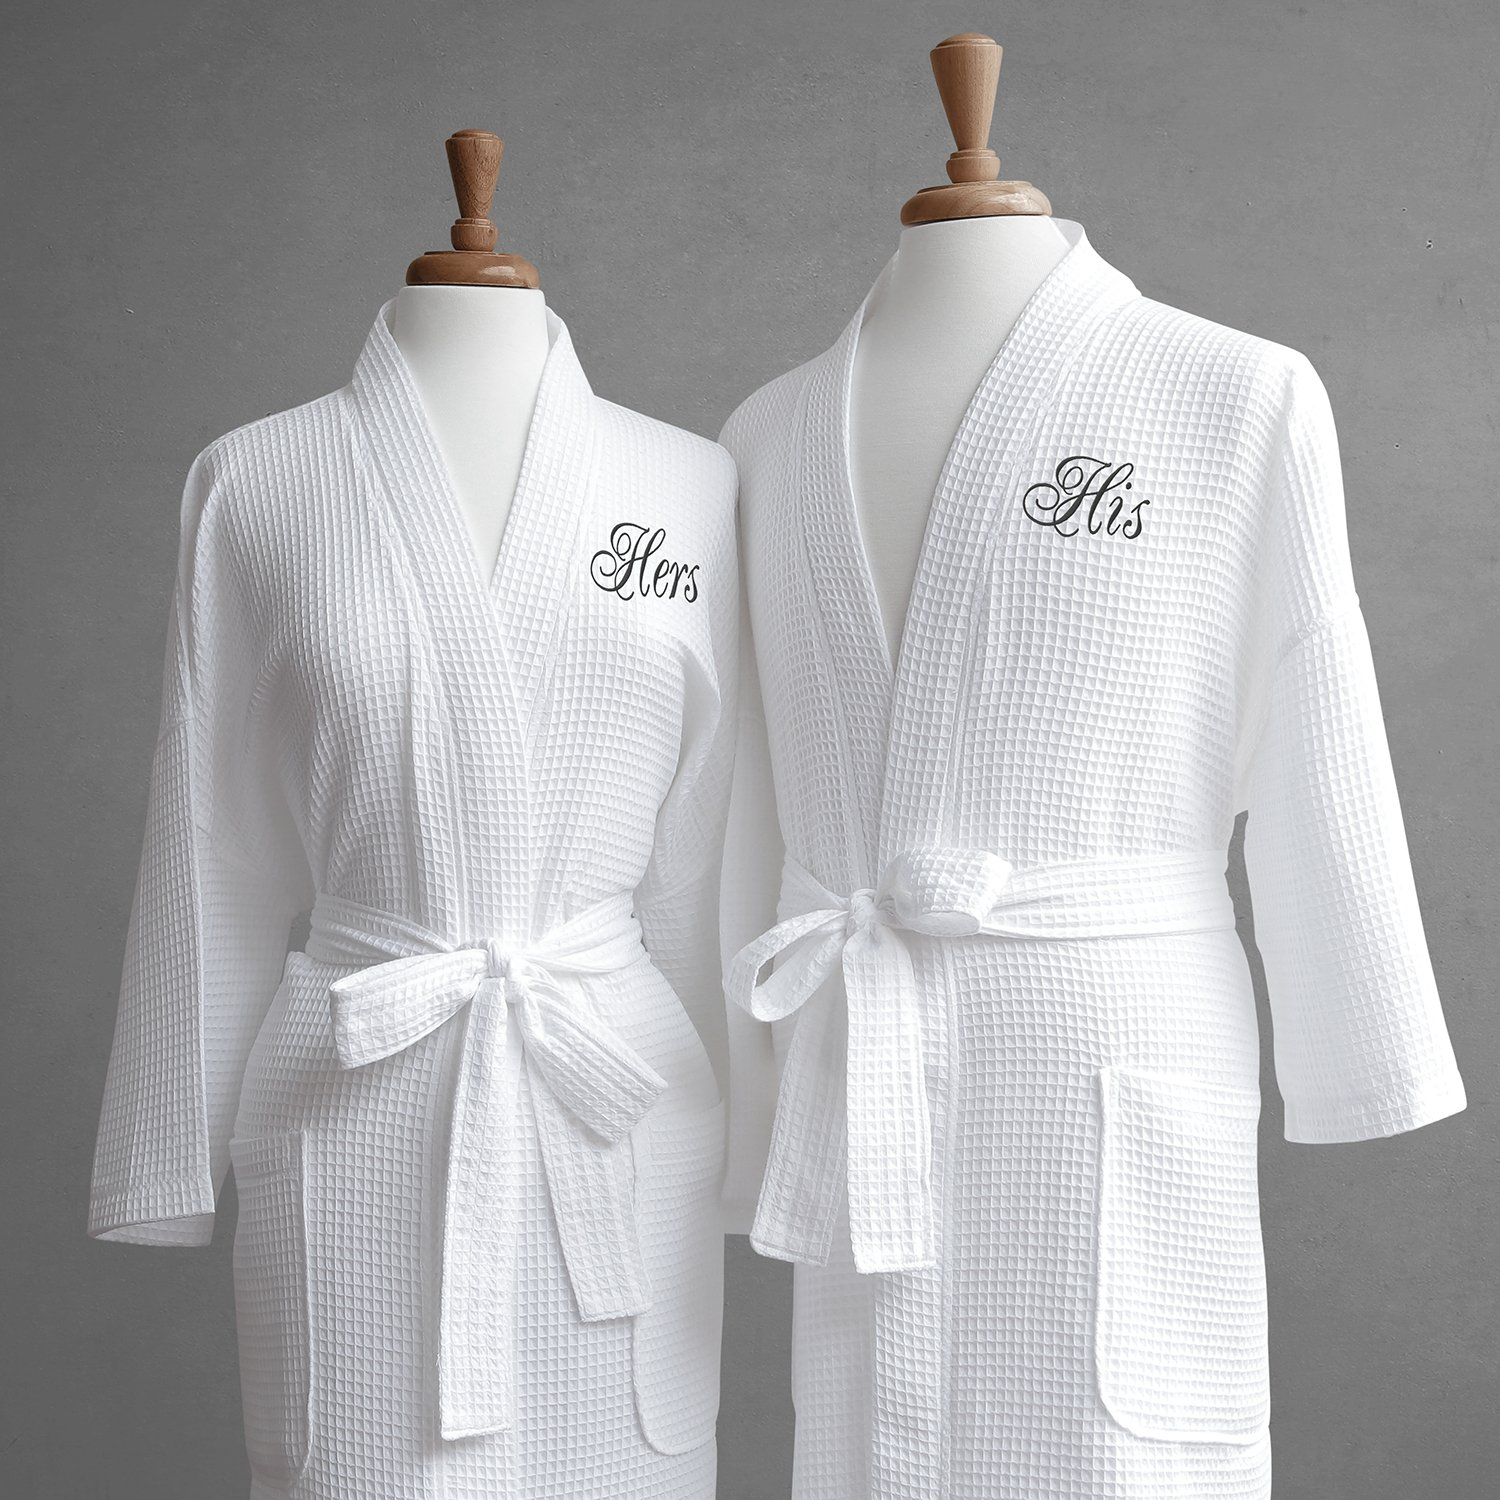 2c01d54c75 Luxor Linens Egyptian Cotton His   Hers Waffle Robes - Perfect Engagement  Gifts! - His   Hers with Gift Packaging